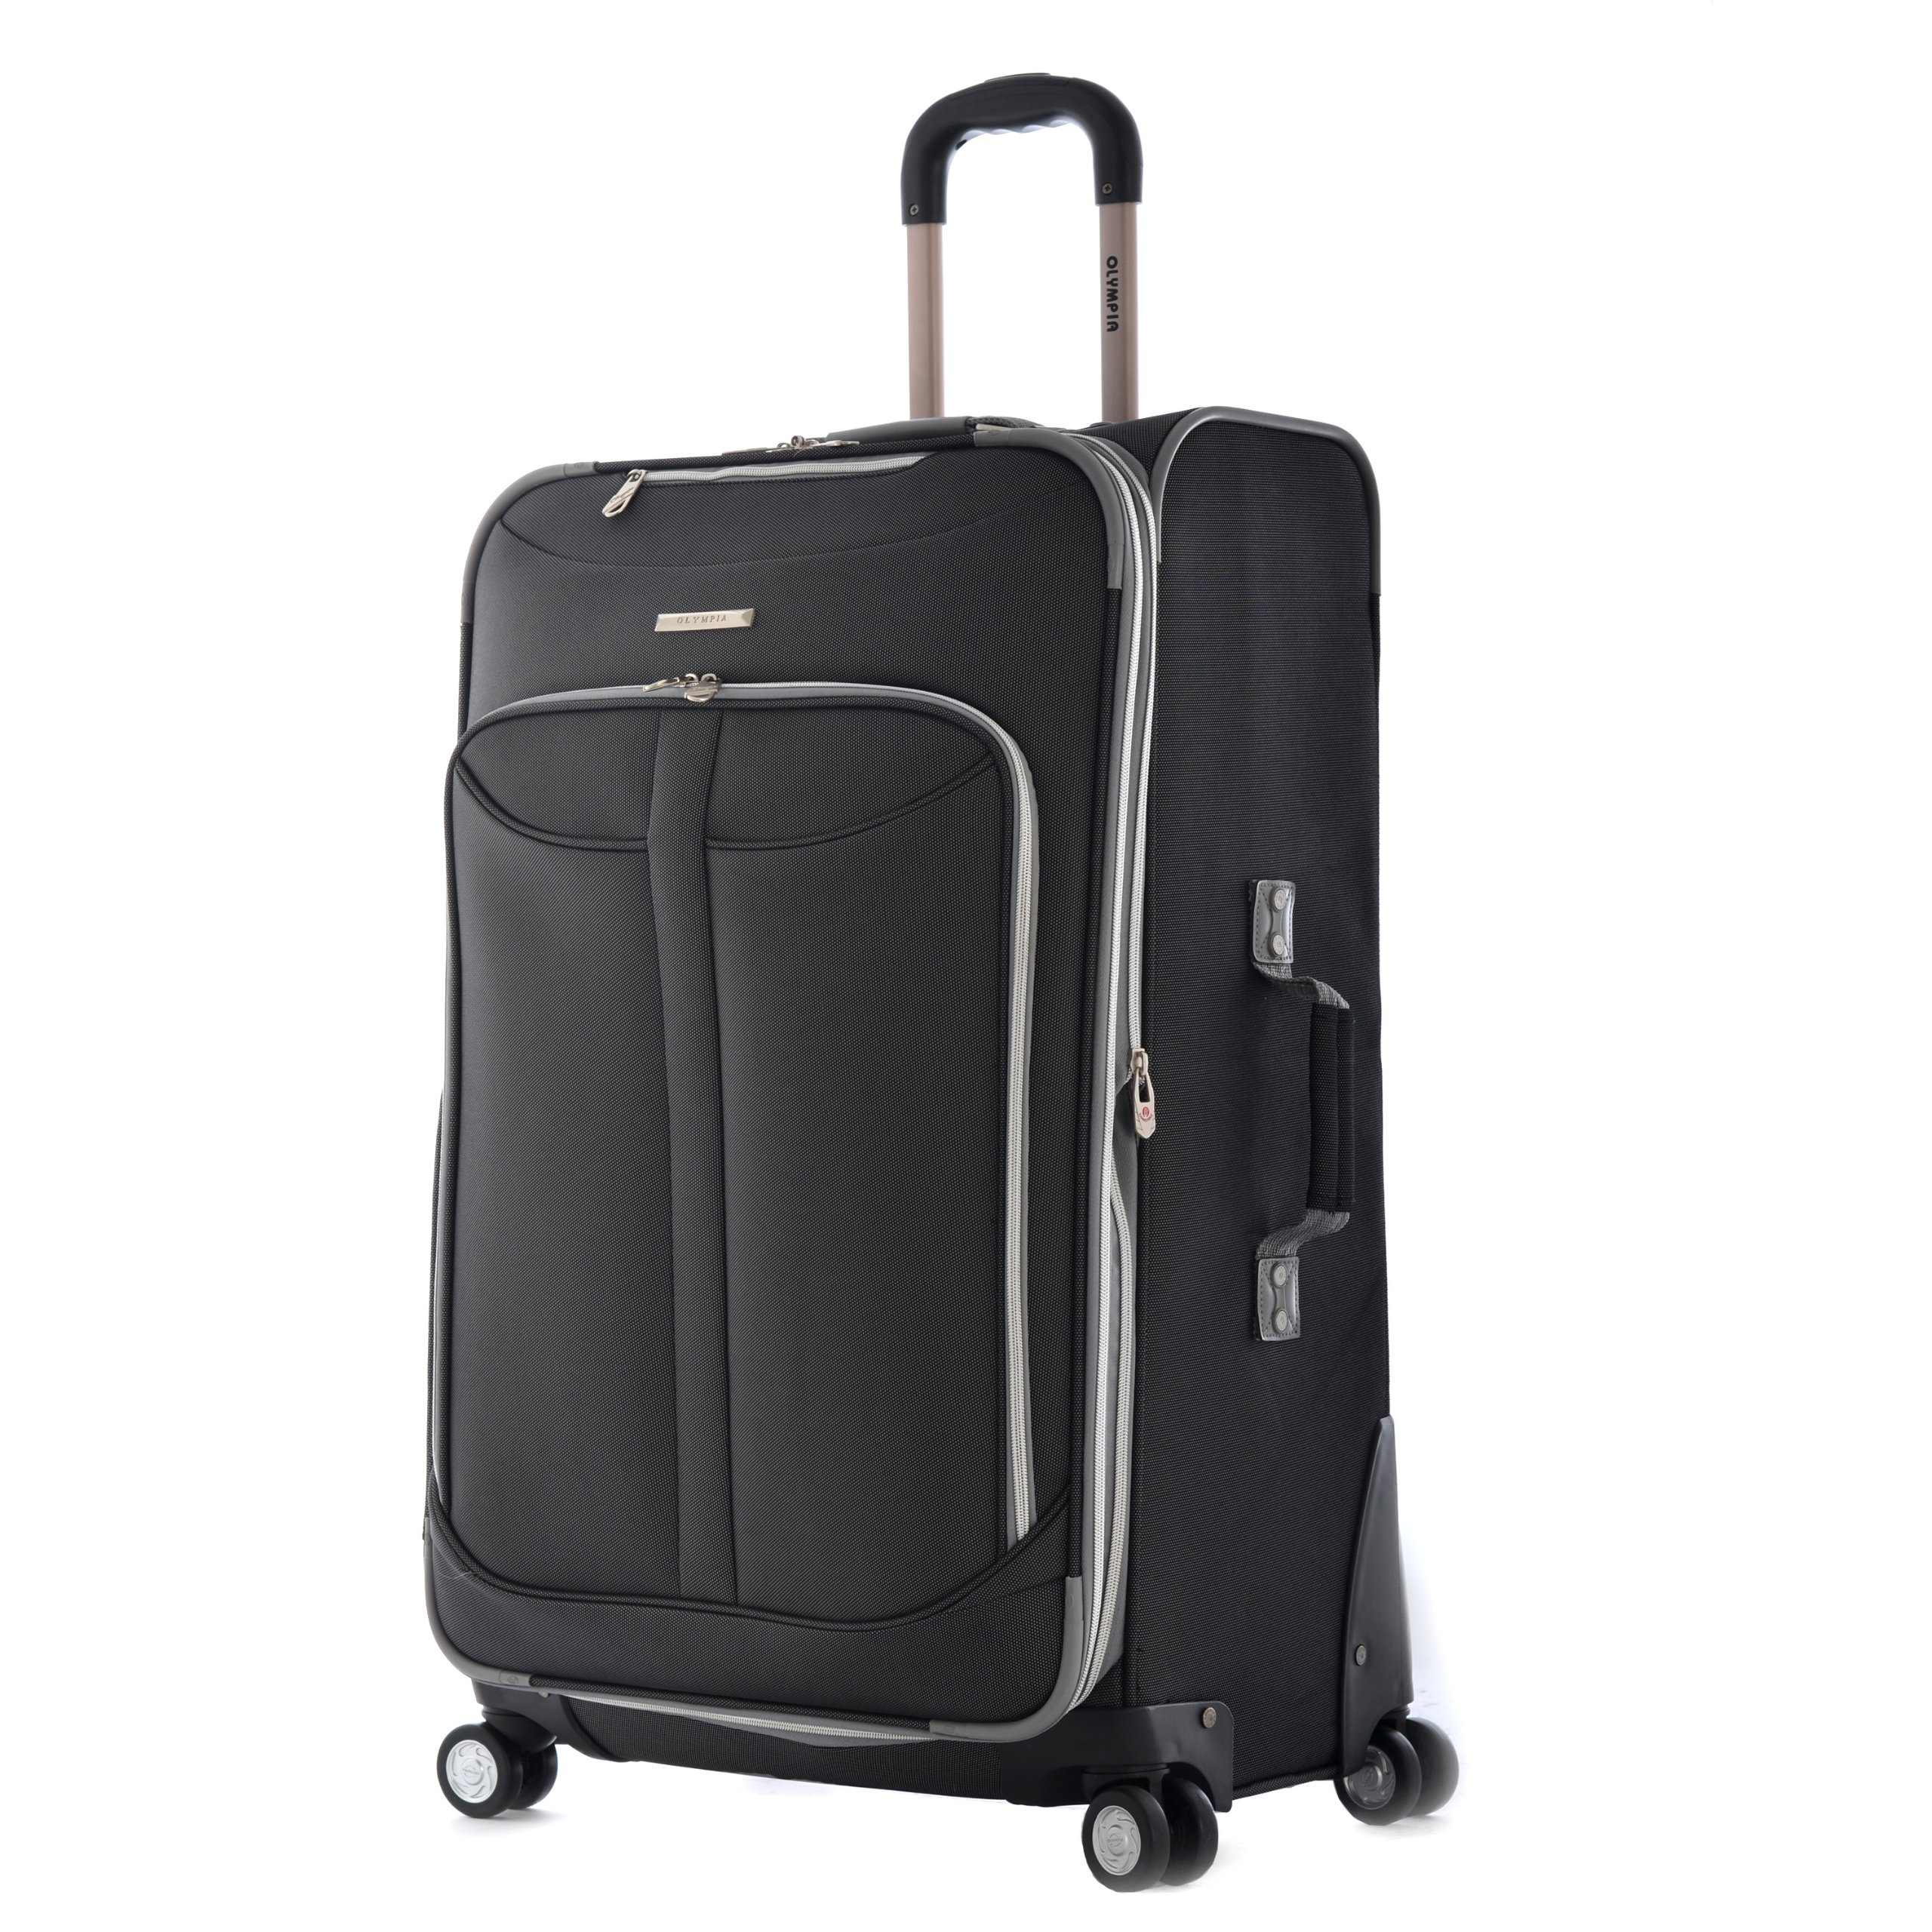 Olympia Luggage  Tuscany 30 Inch Expandable Vertical Rolling Luggage Case,Black,One Size by Olympia